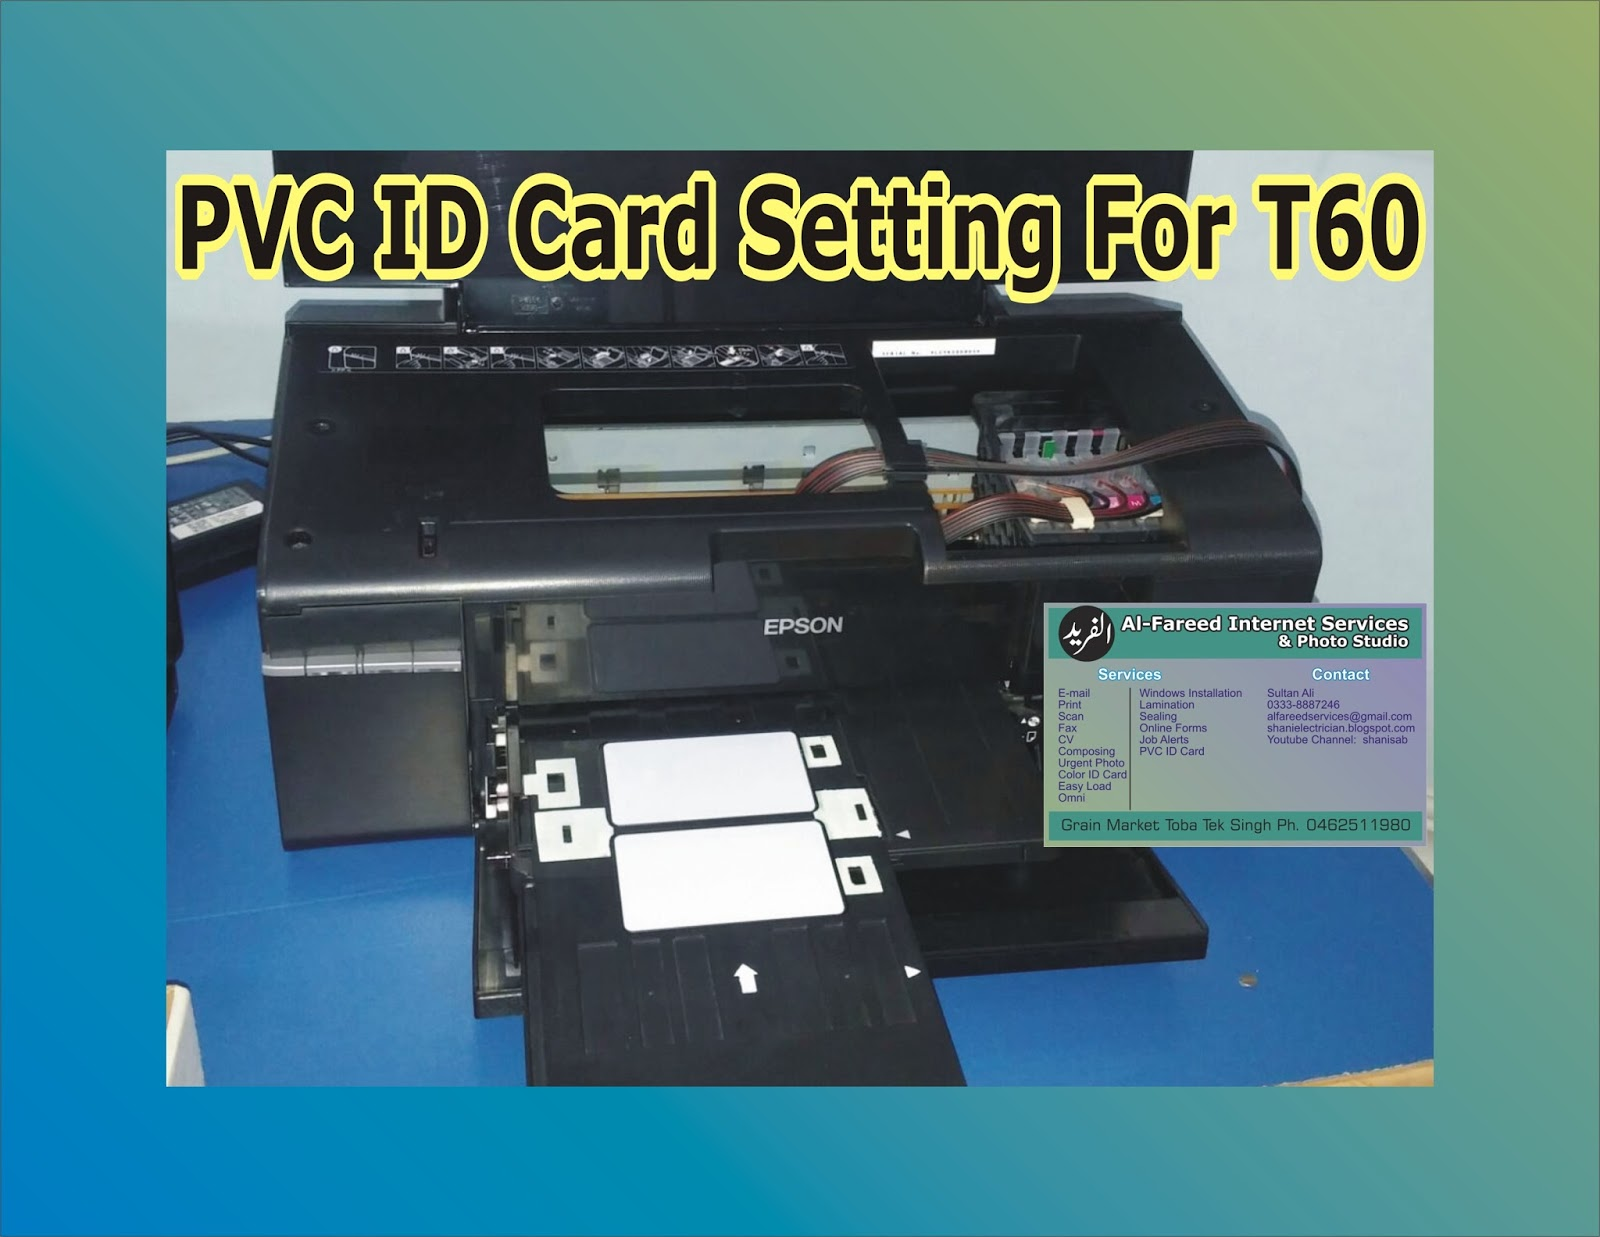 How To Print Pvc Id Card With Epson T60 Printer Al Fareed Services